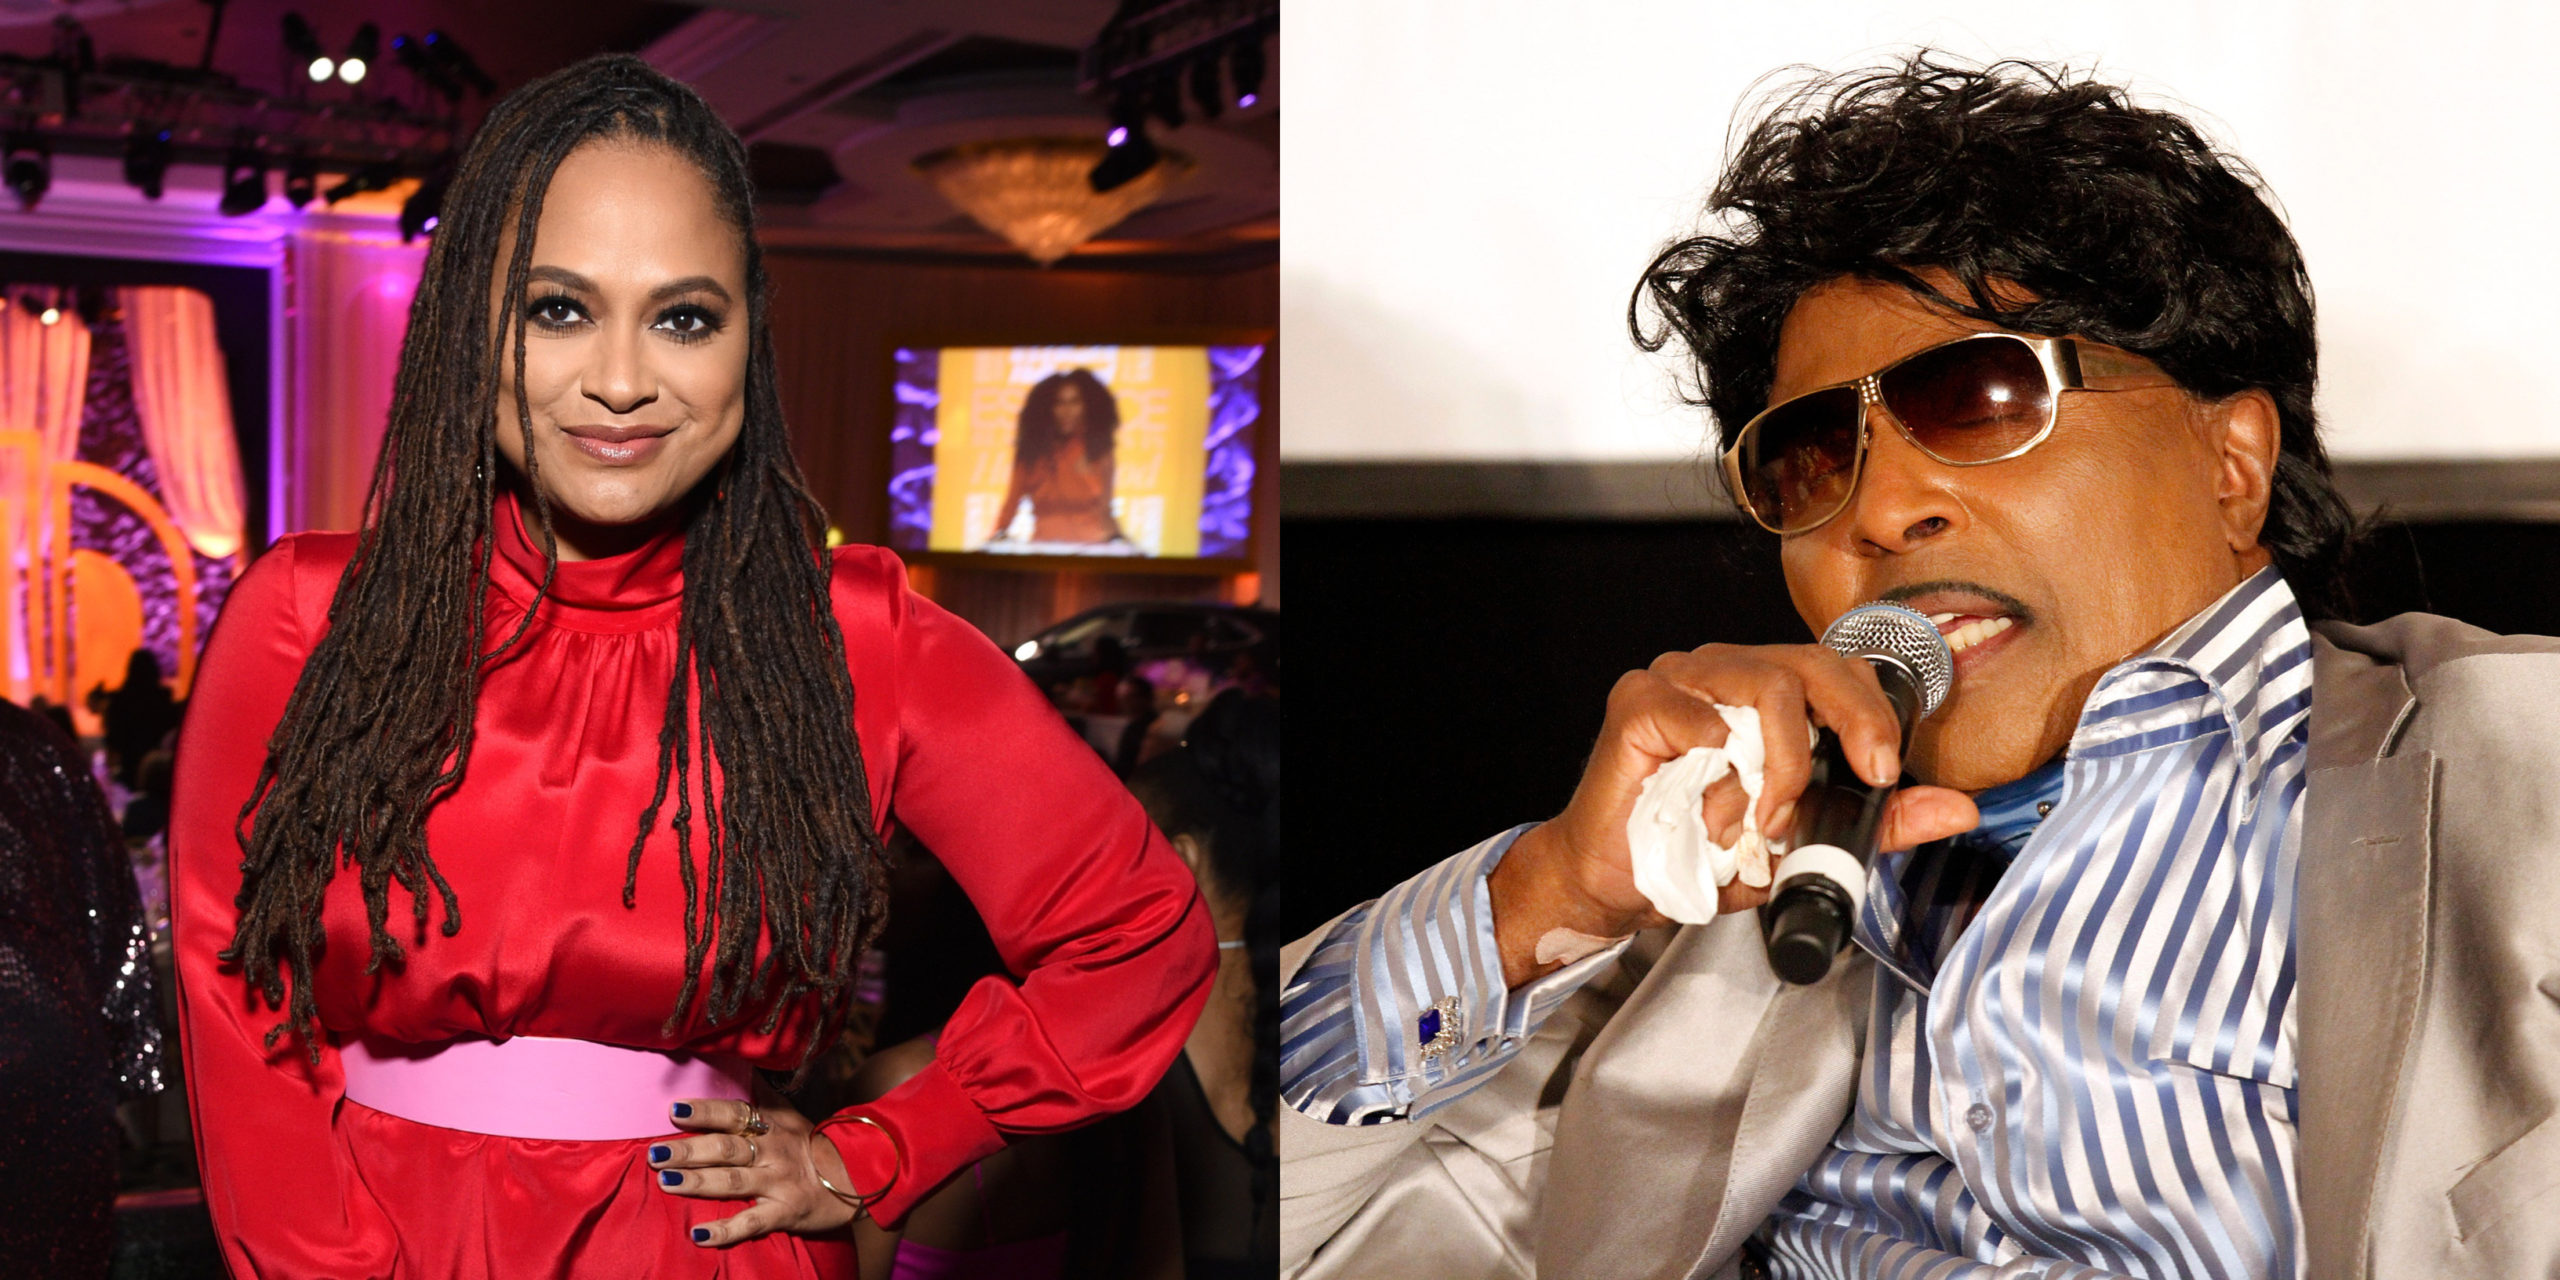 Ava DuVernay Reveals Little Richard Tipped Her $100 Weekly When She Was a Waitress